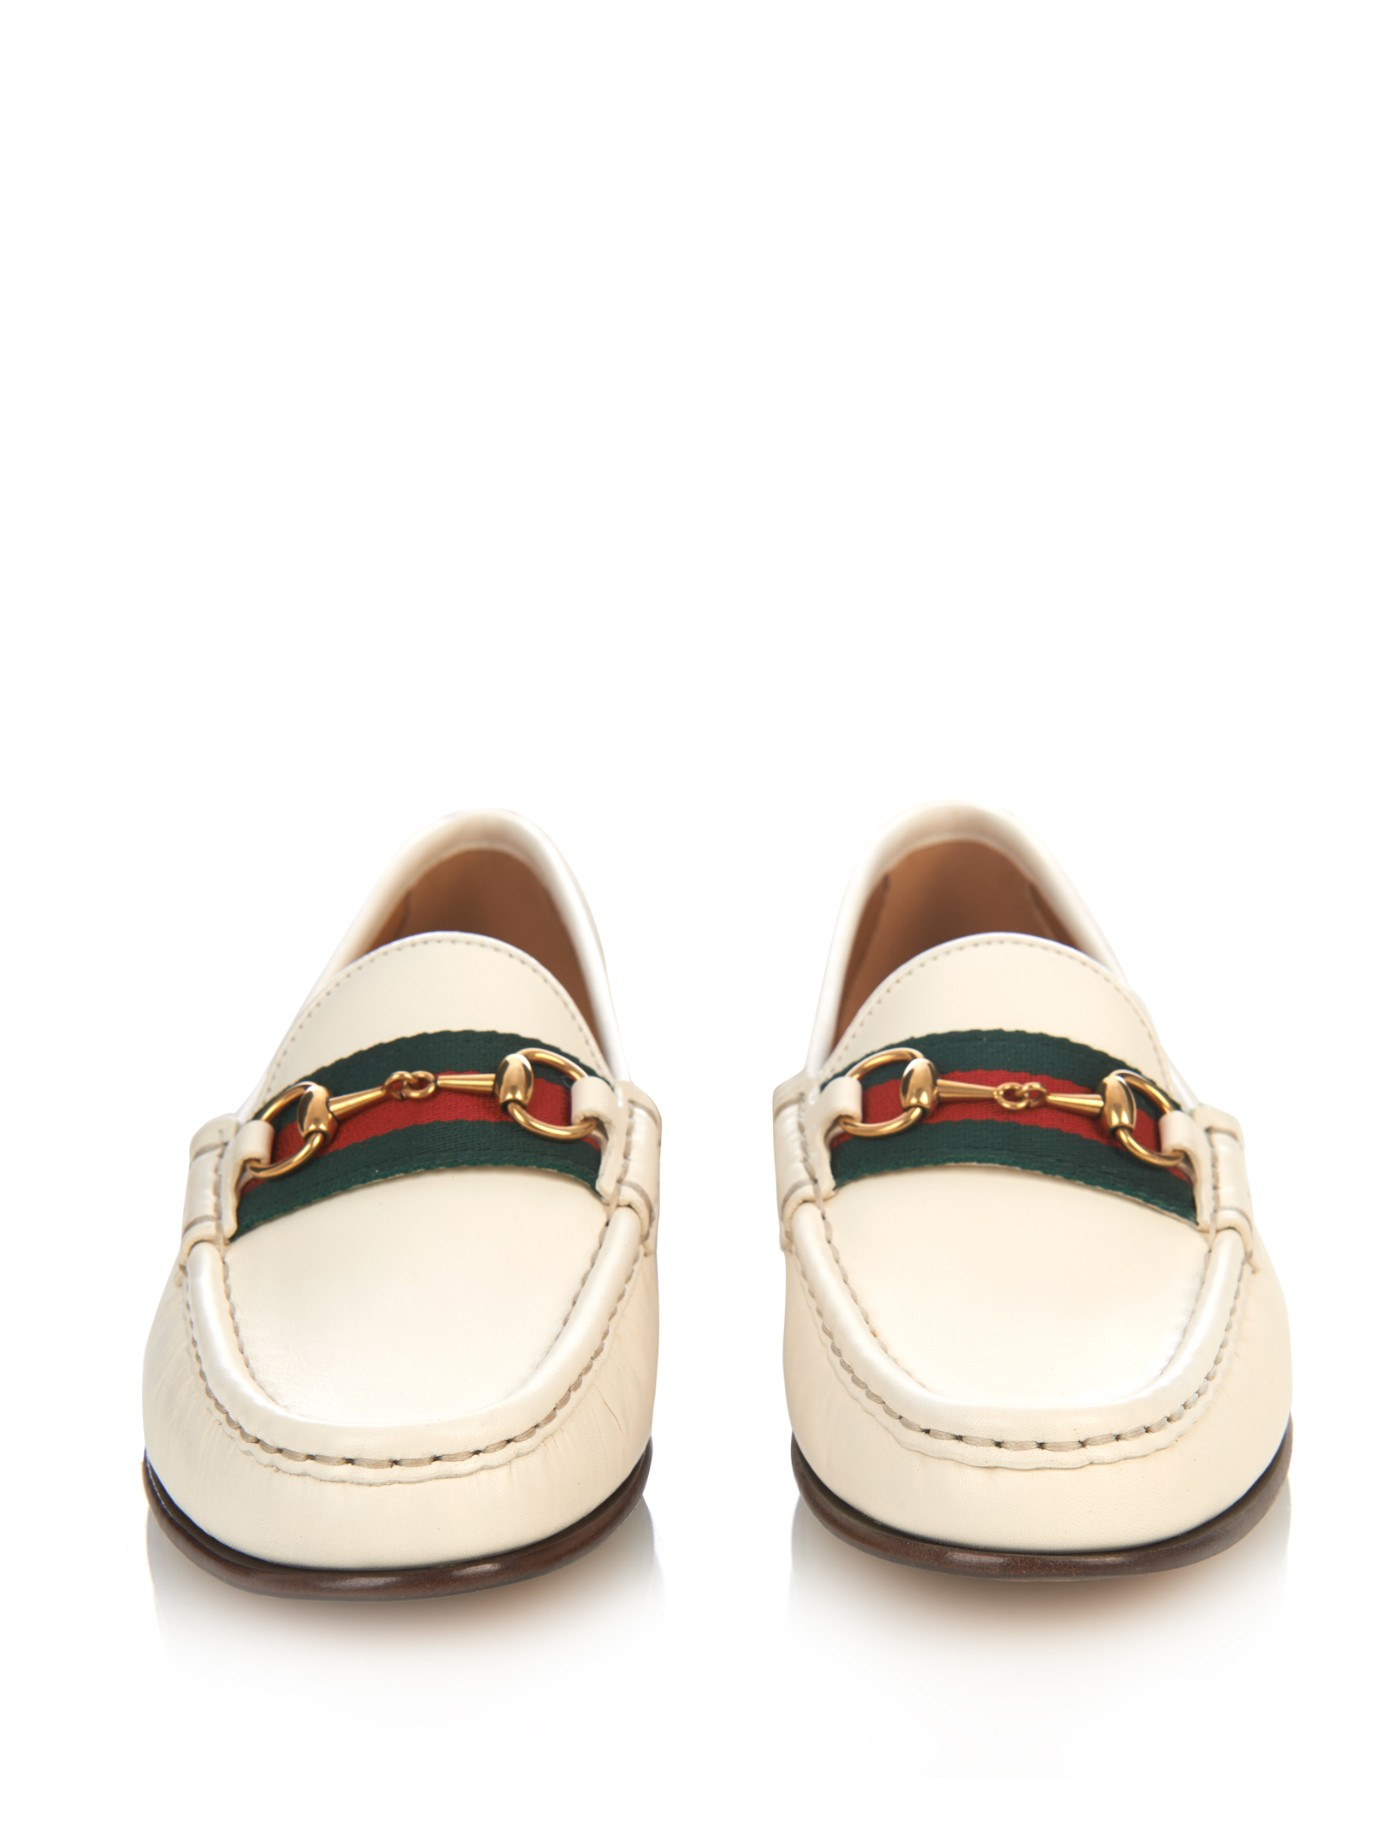 cf524871b2c Lyst - Gucci Horsebit and Web Leather Loafers in White